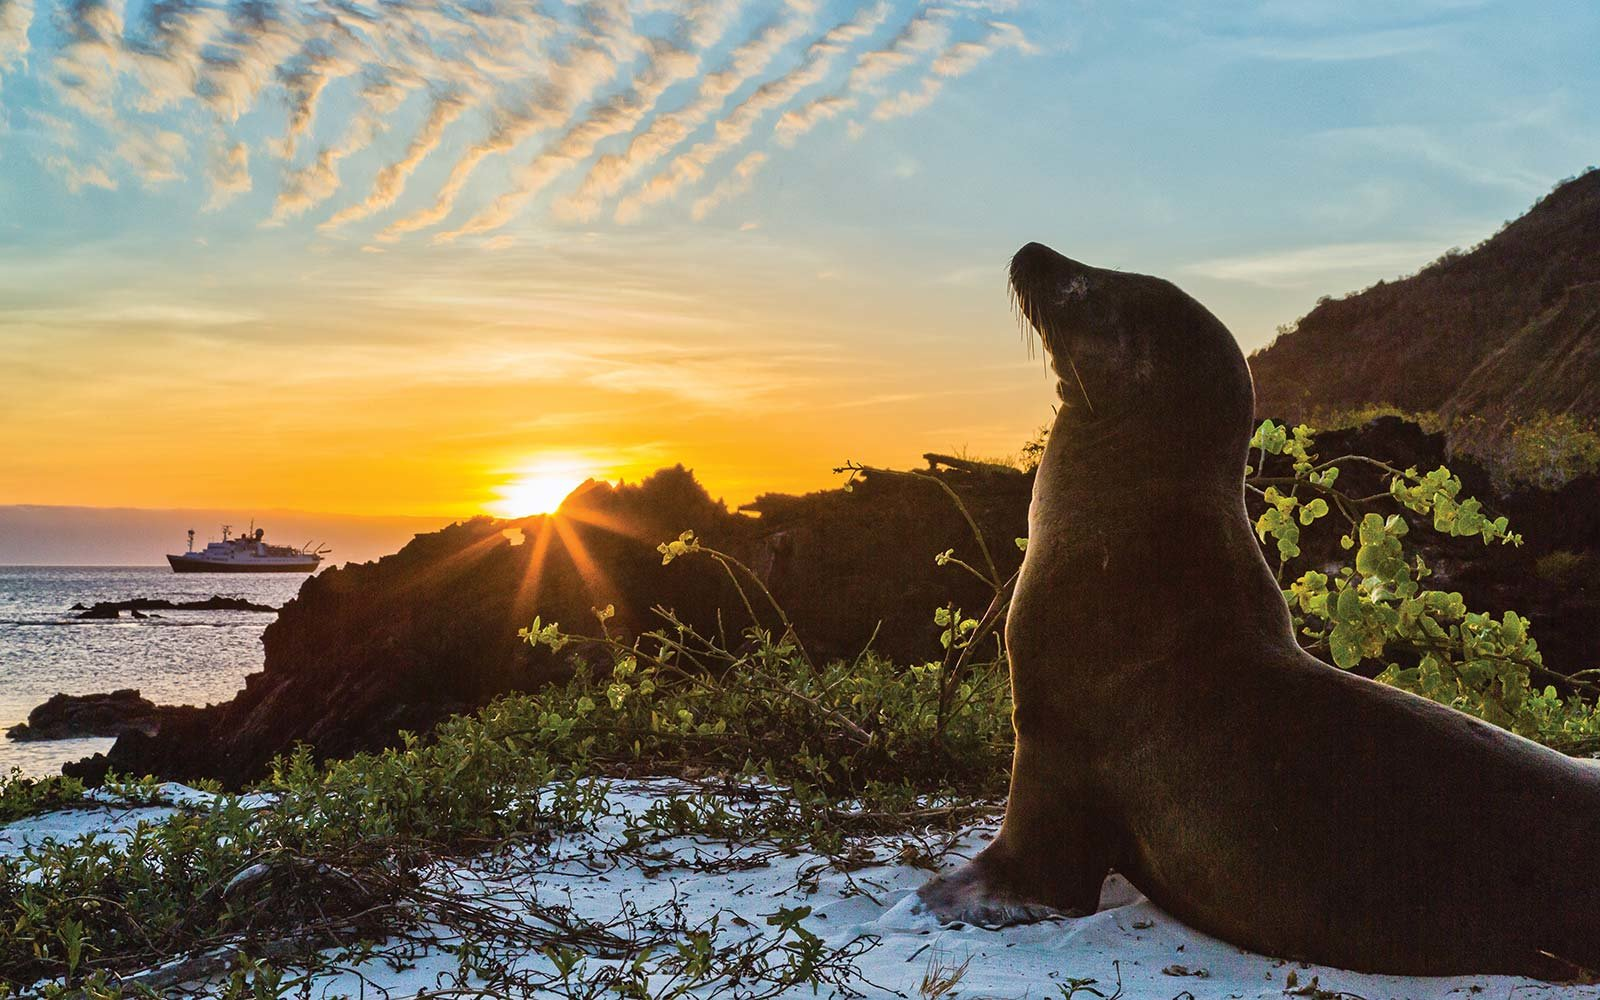 Lindblad Expeditions National Geographic Endeavour II